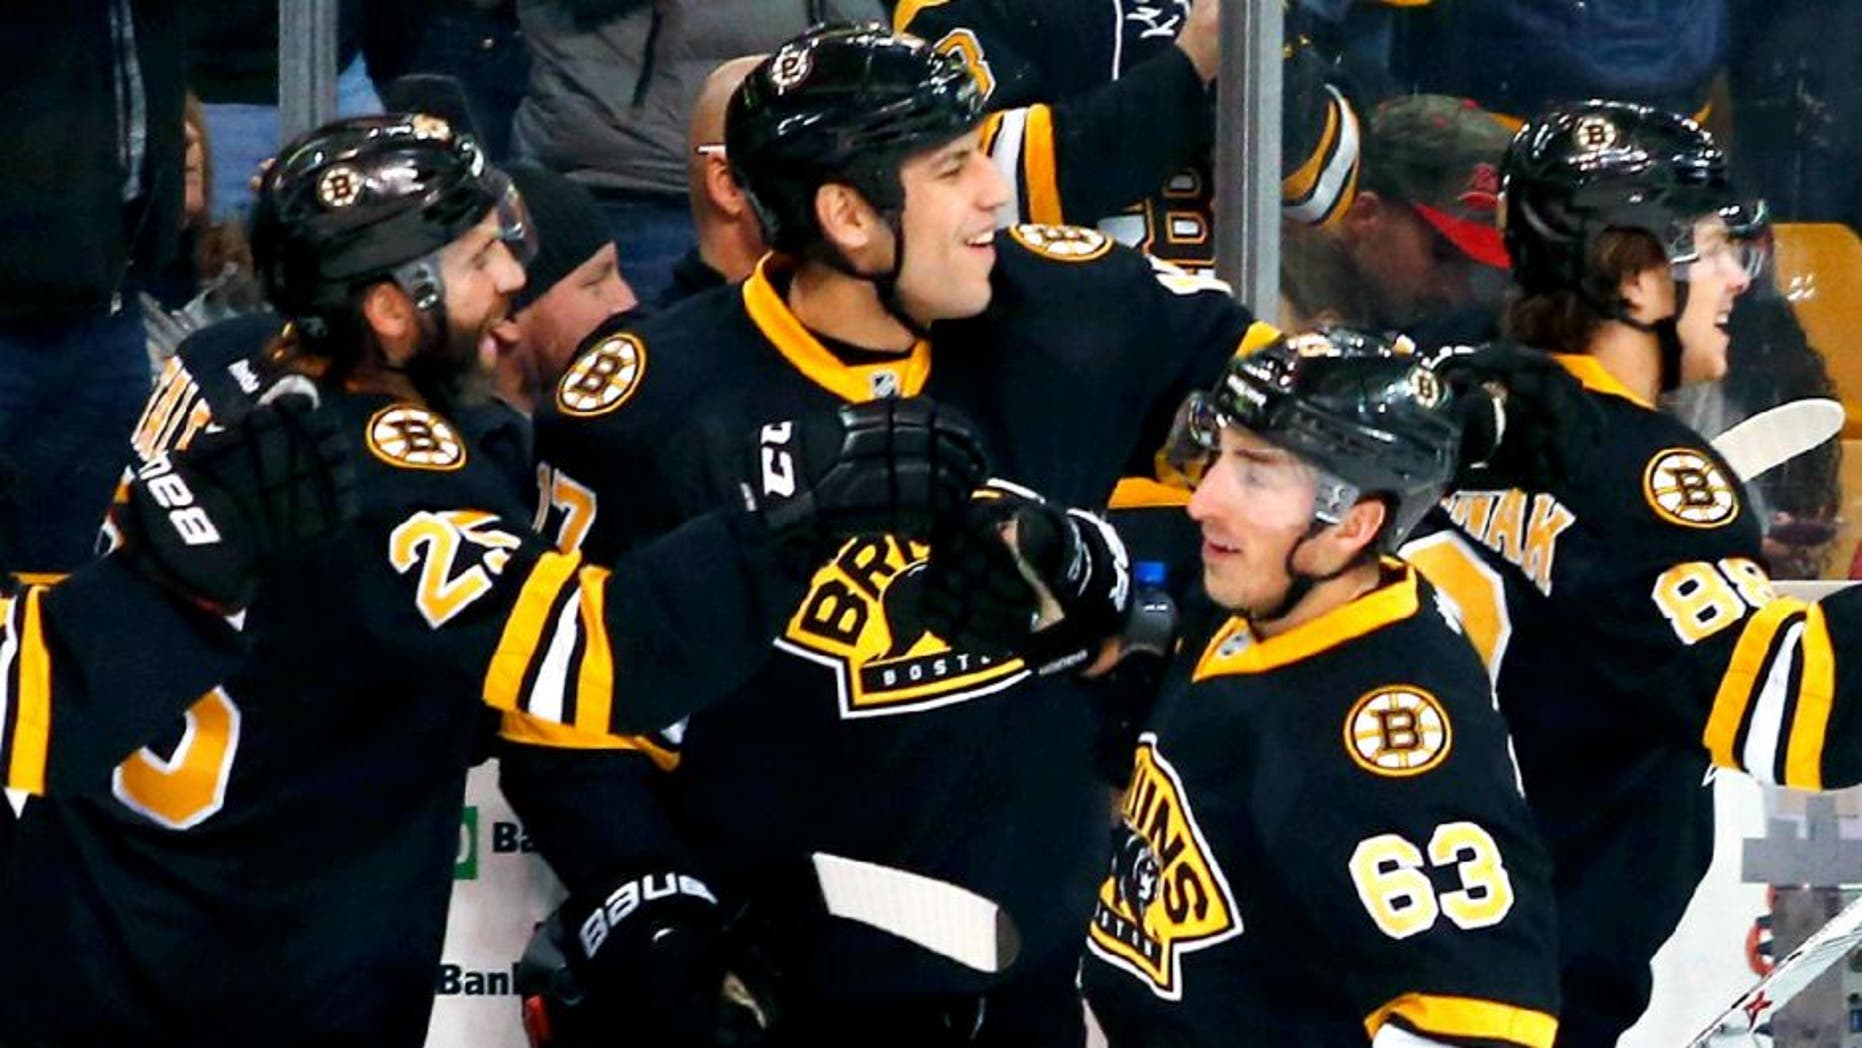 Mar 8, 2015; Boston, MA, USA; Boston Bruins left wing Brad Marchand (63) is congratulated at the bench by Boston Bruins center Maxime Talbot (25) and left wing Milan Lucic (17) after scoring against the Detroit Red Wings during the first period at TD Garden. Mandatory Credit: Winslow Townson-USA TODAY Sports